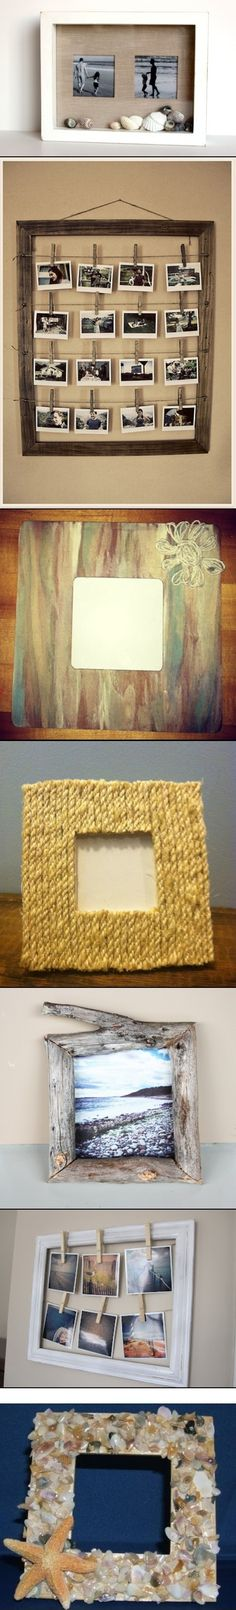 DIY Photo Frame | Old window frames and obsolete things to recreate b'ful frames.